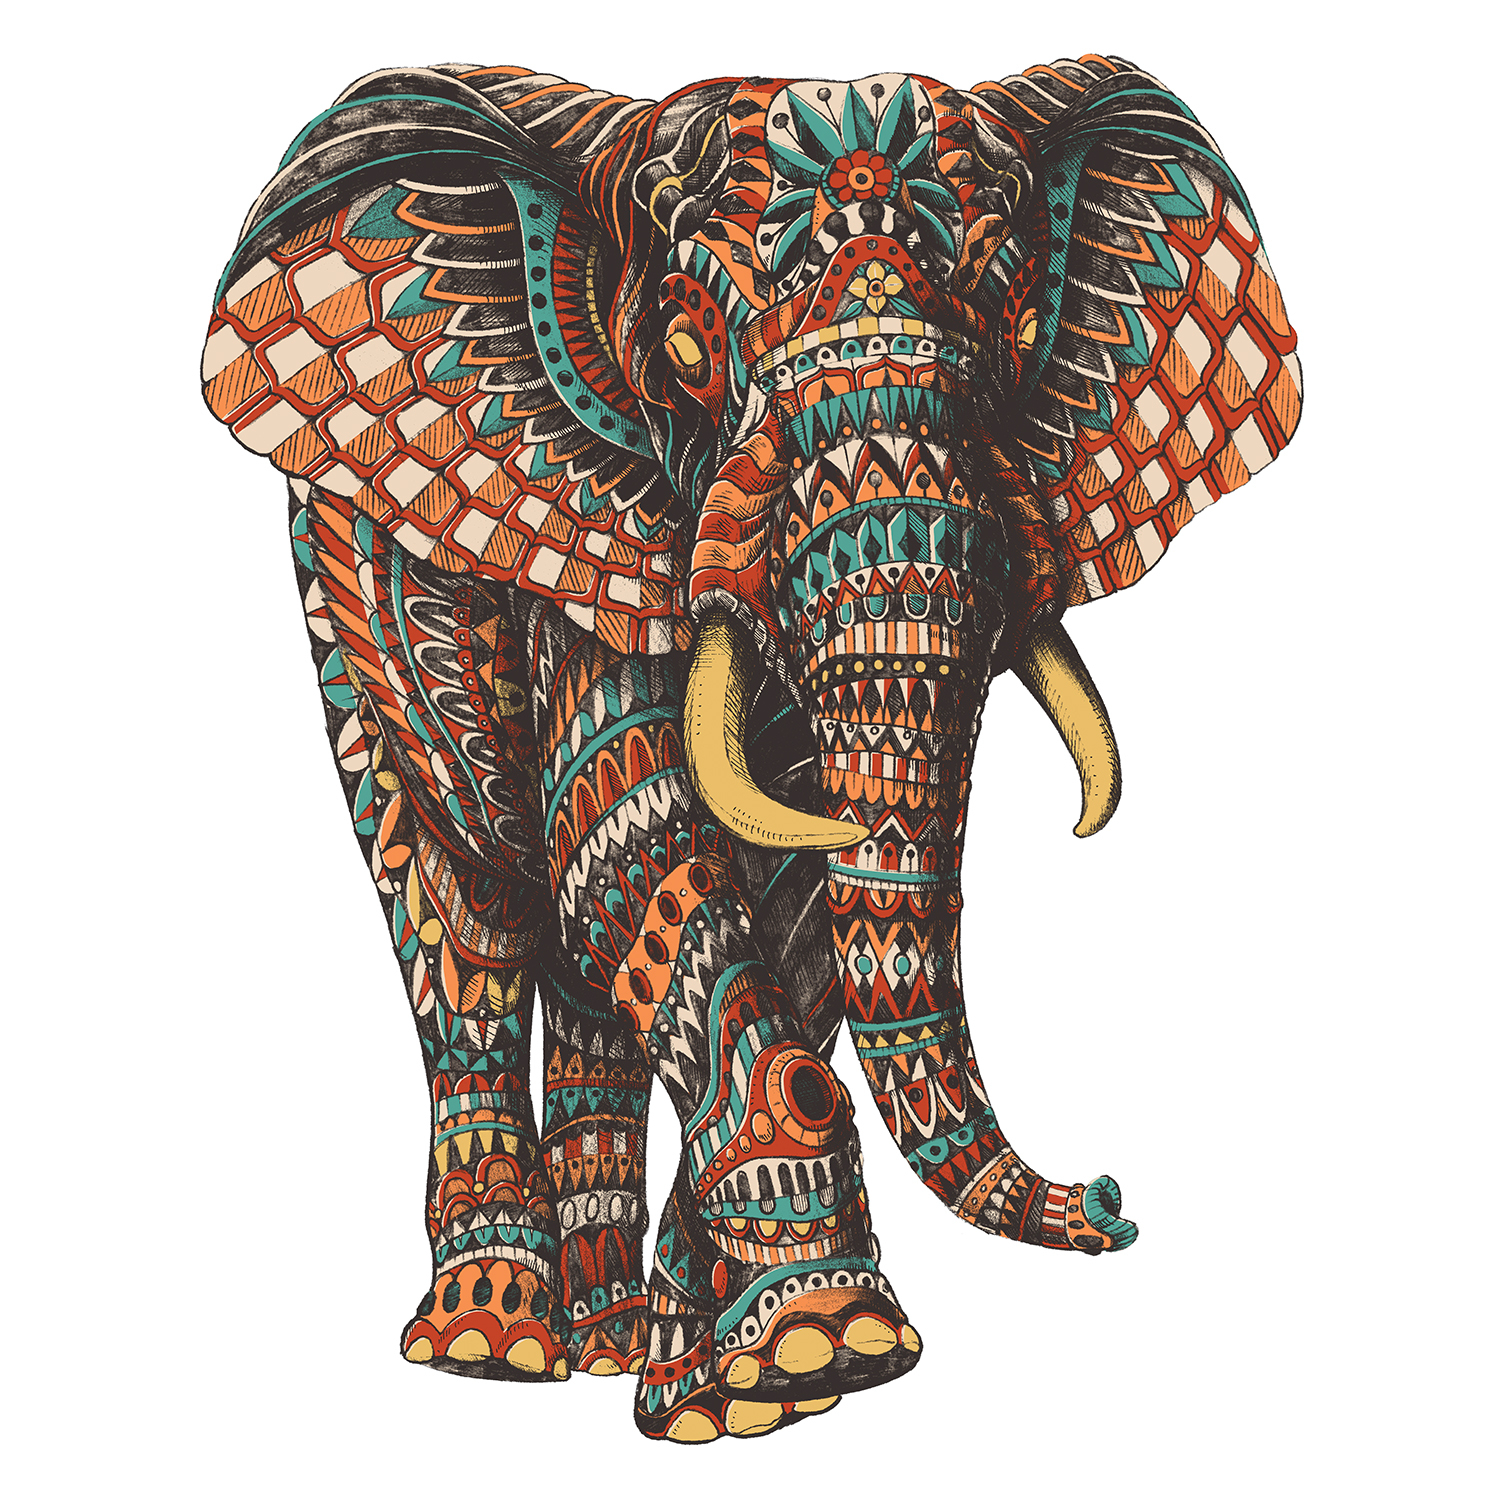 a walking elephant with tusks with an intricate design with the colors orange, red, teal, gold, and black